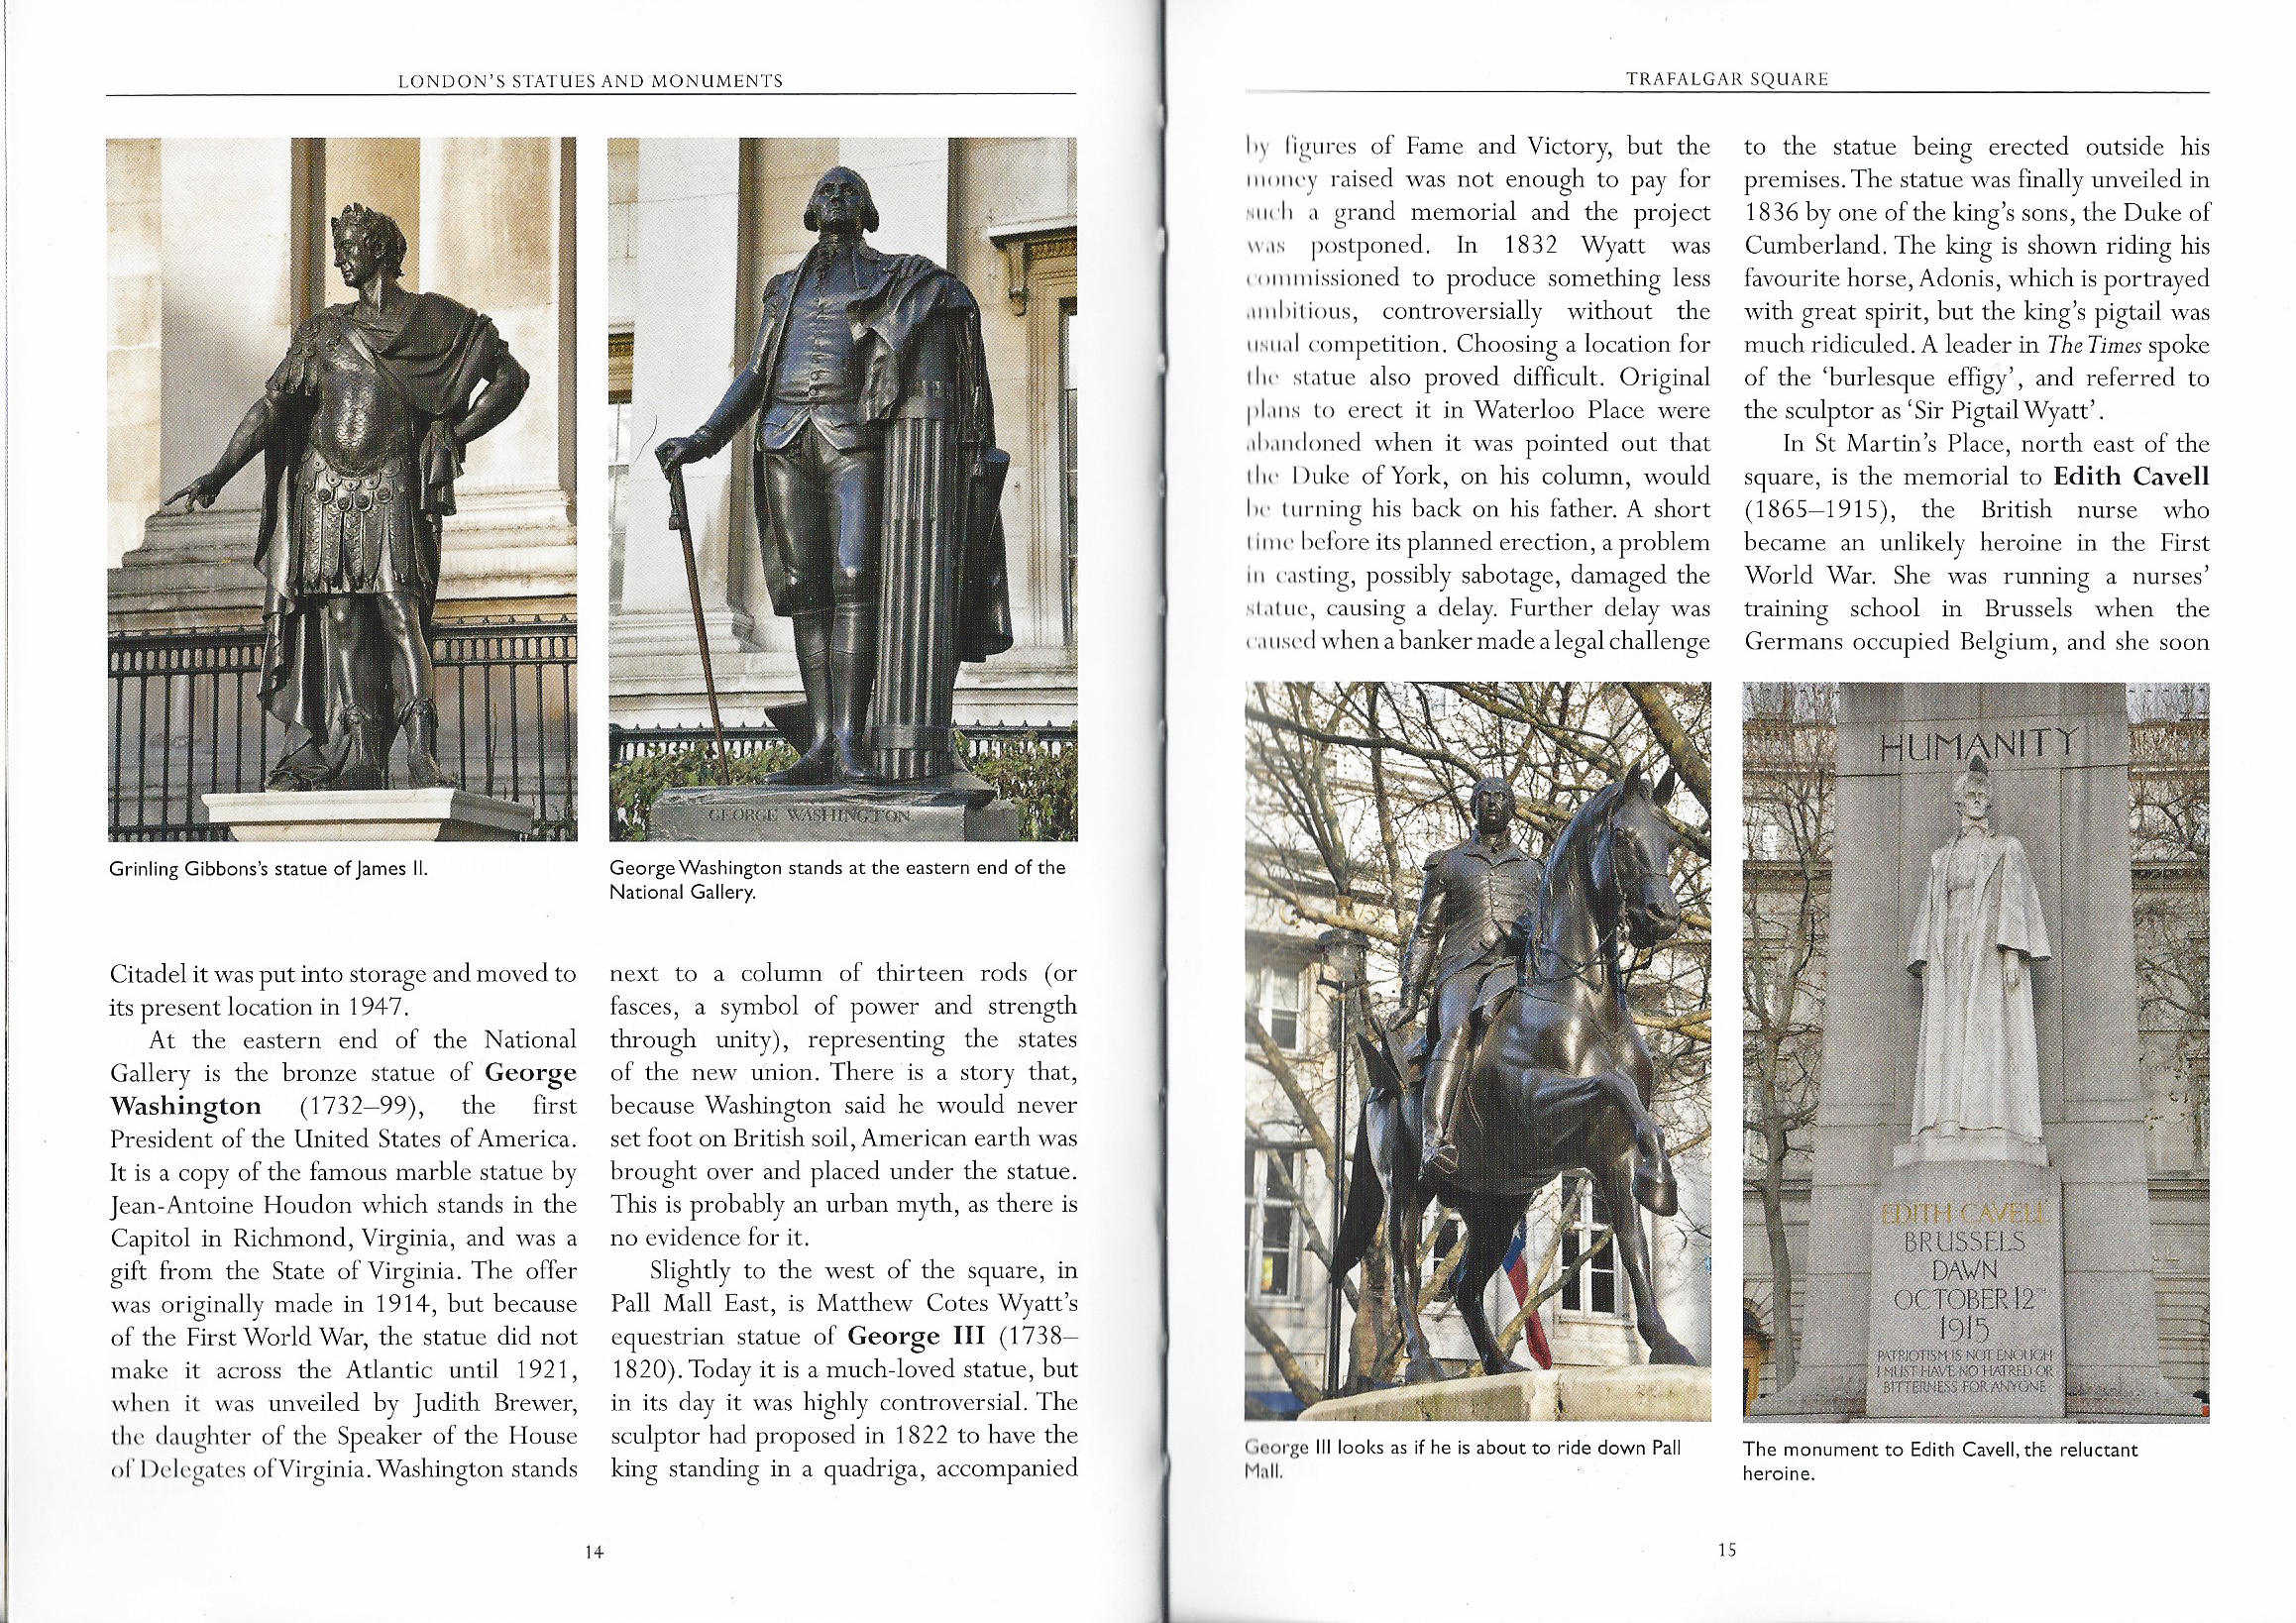 London's Statues and Monuments, inside